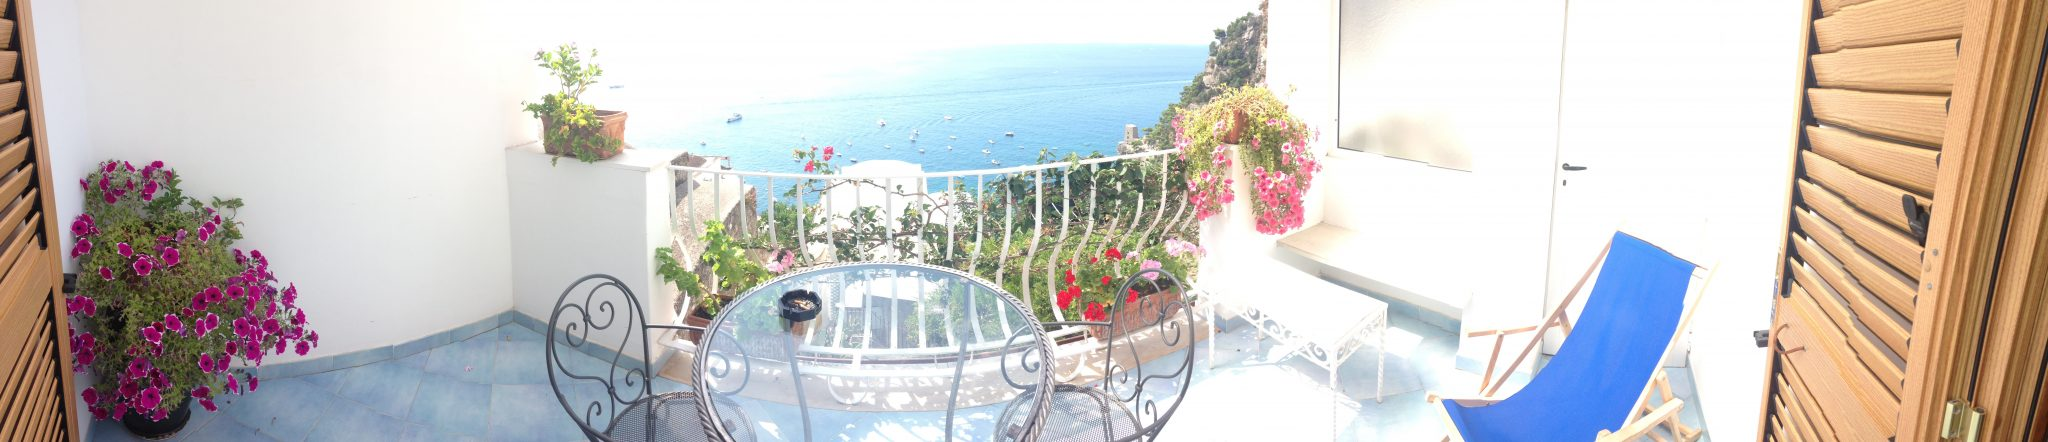 Bed and breakfast with a view in Positano